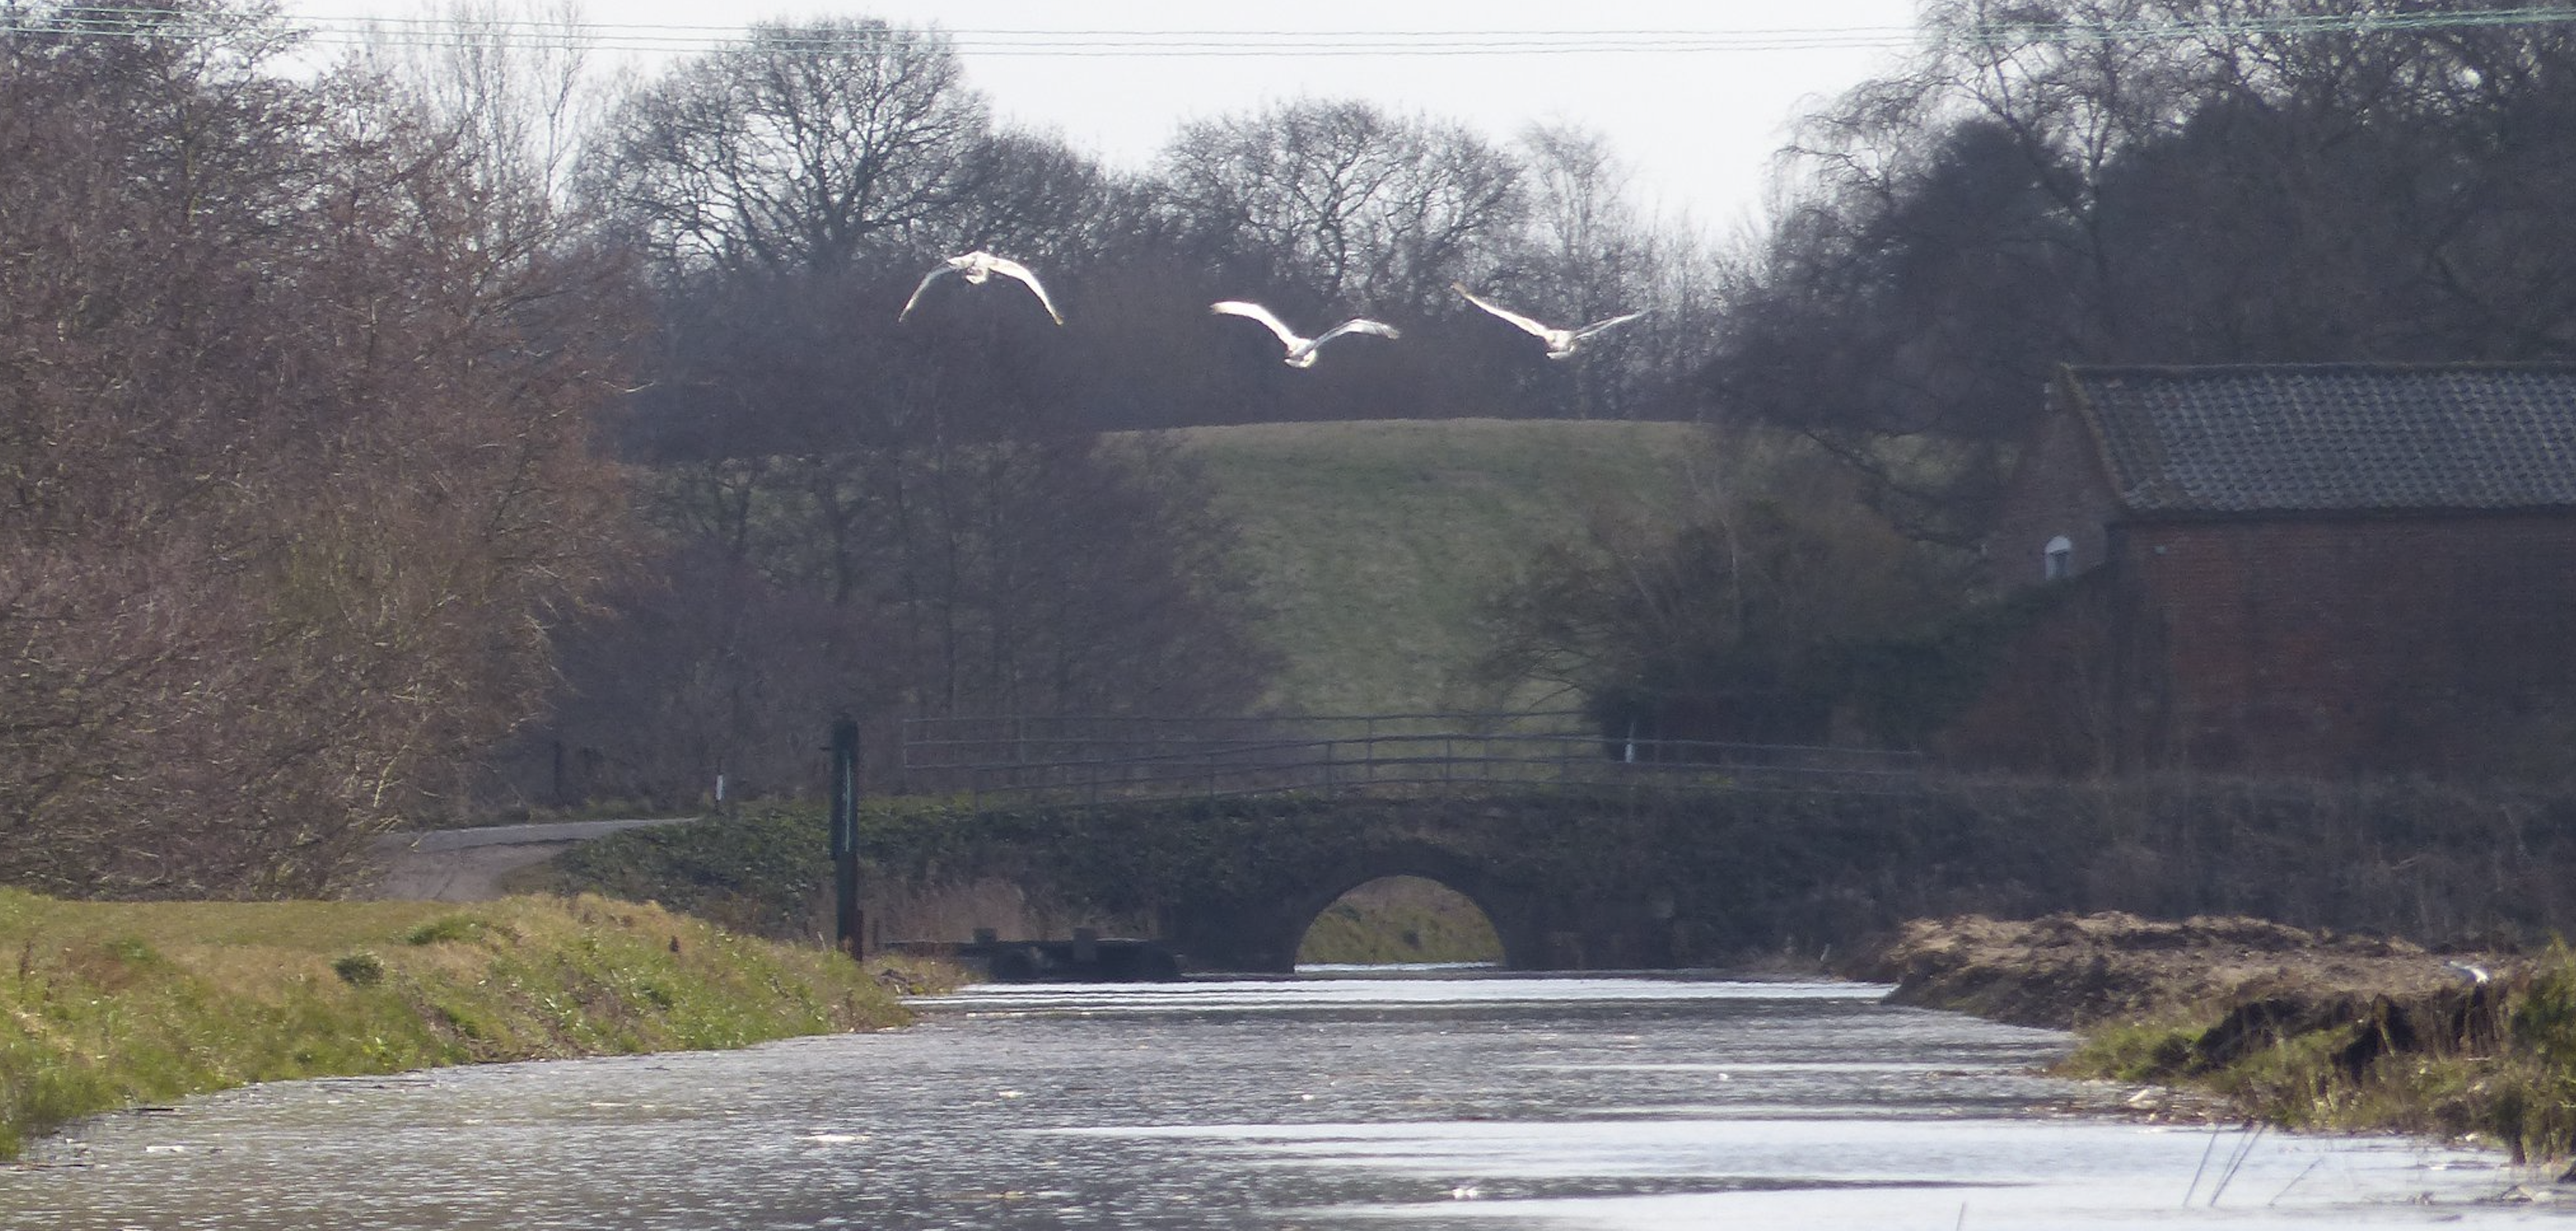 The canal at Royston Bridge after a trial re-watering in January 2018. Photo taken by the Reverend Paul Cubitt